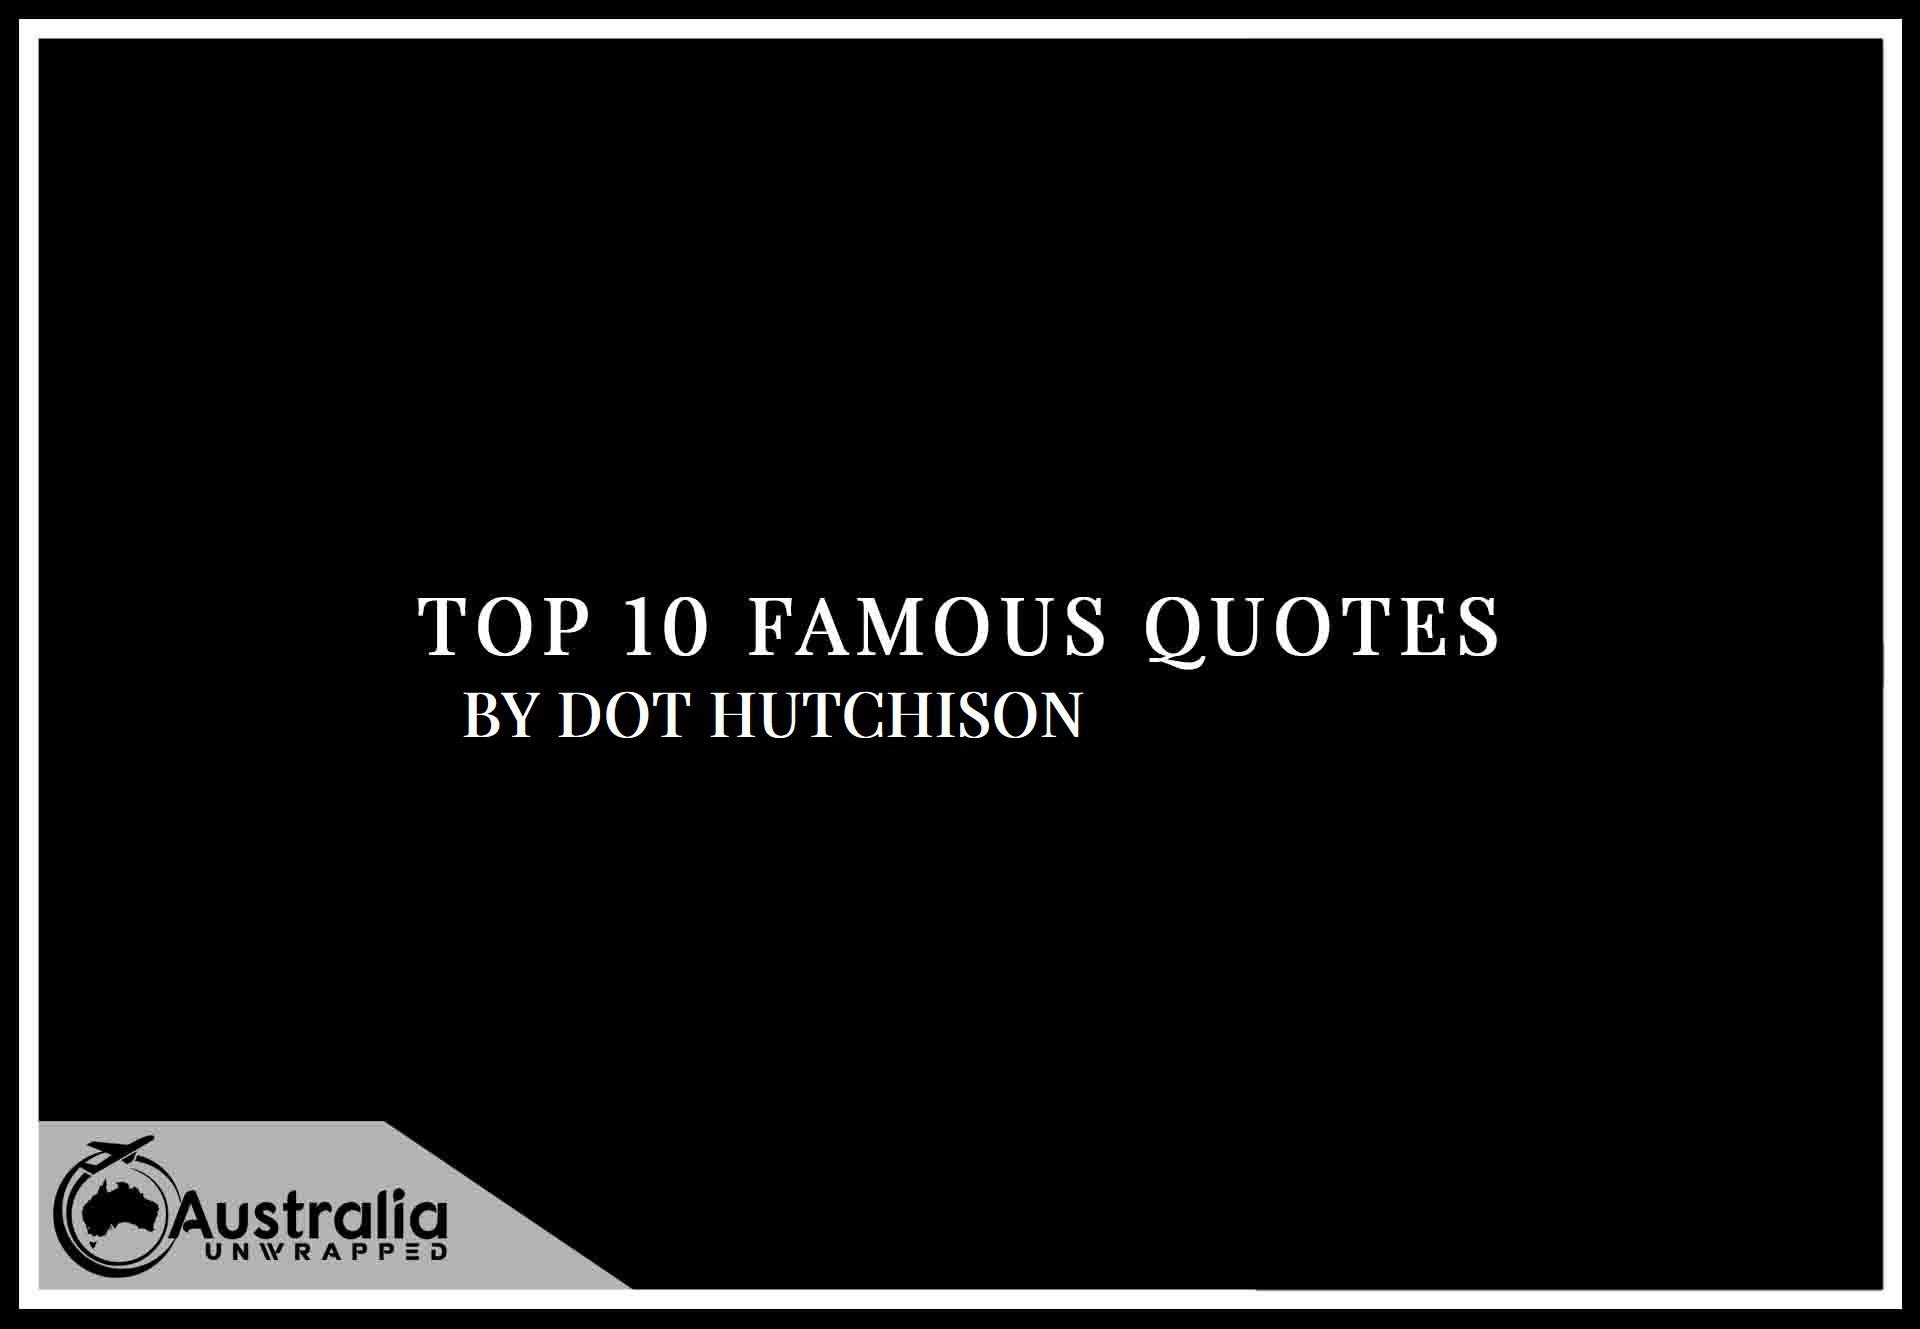 Top 10 Famous Quotes by Author Dot Hutchison